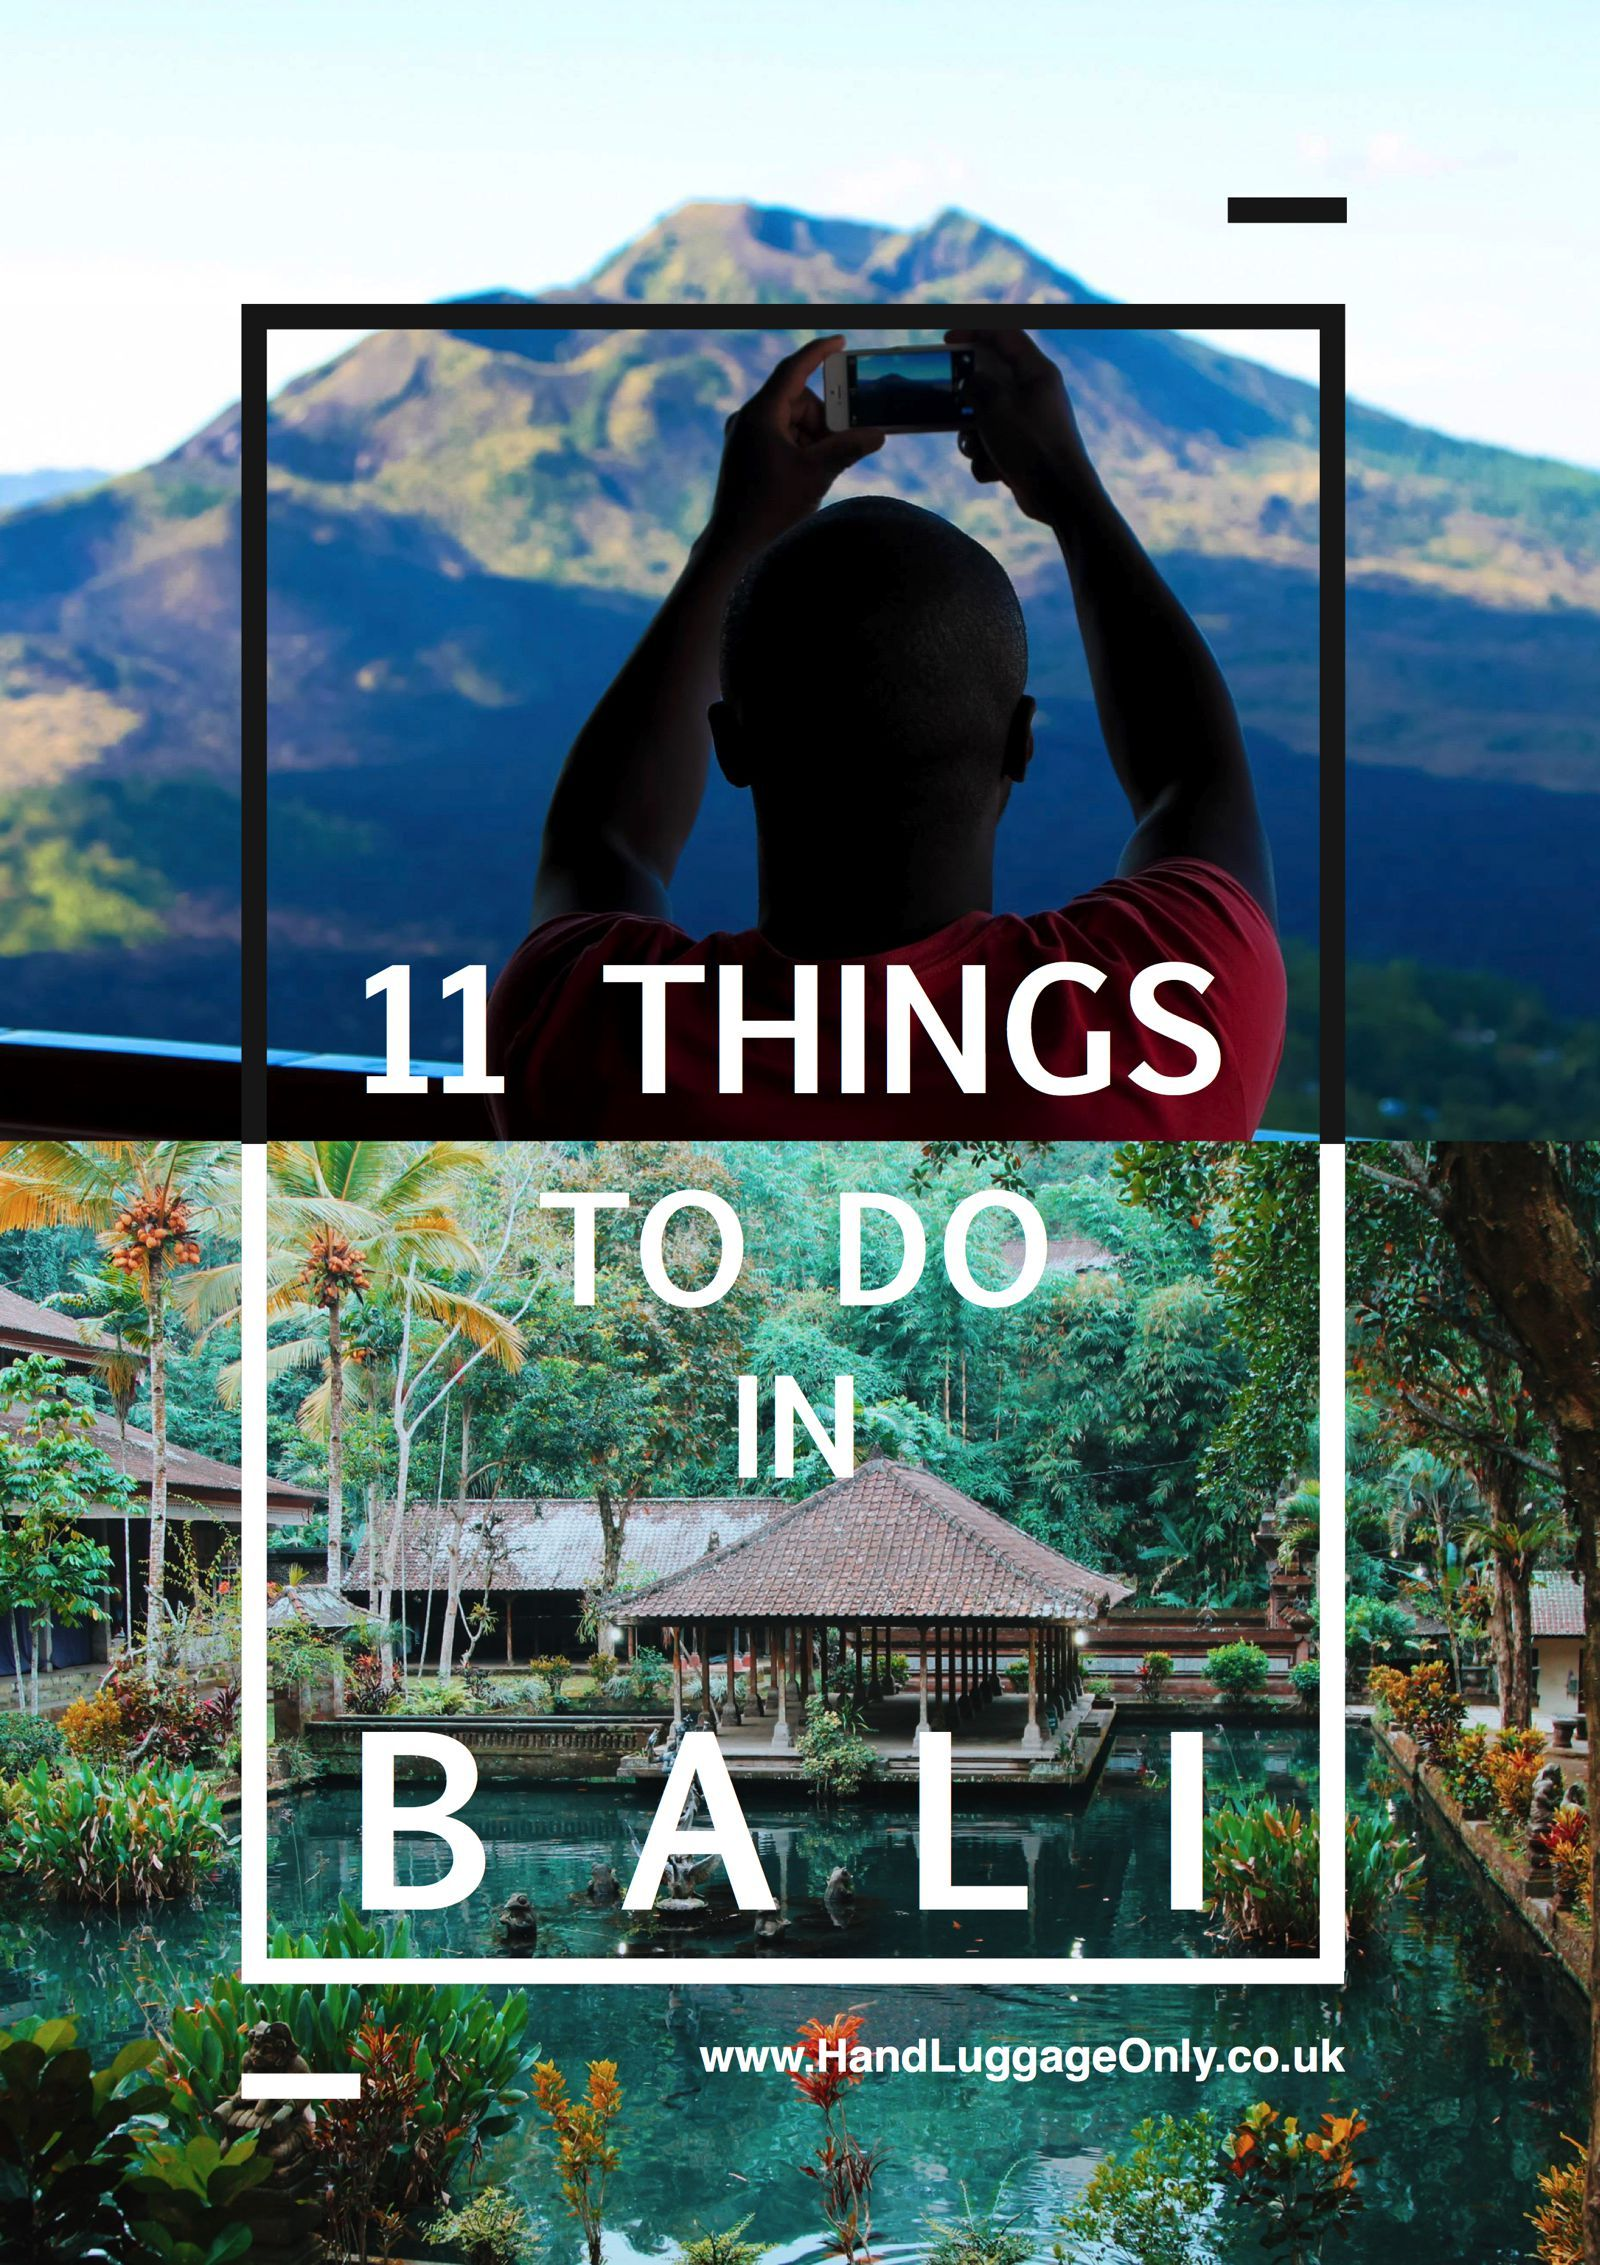 11 Amazing Things You Need To See And Do In Bali On Your First Visit - Hand Luggage Only - Travel, Food & Photography Blog